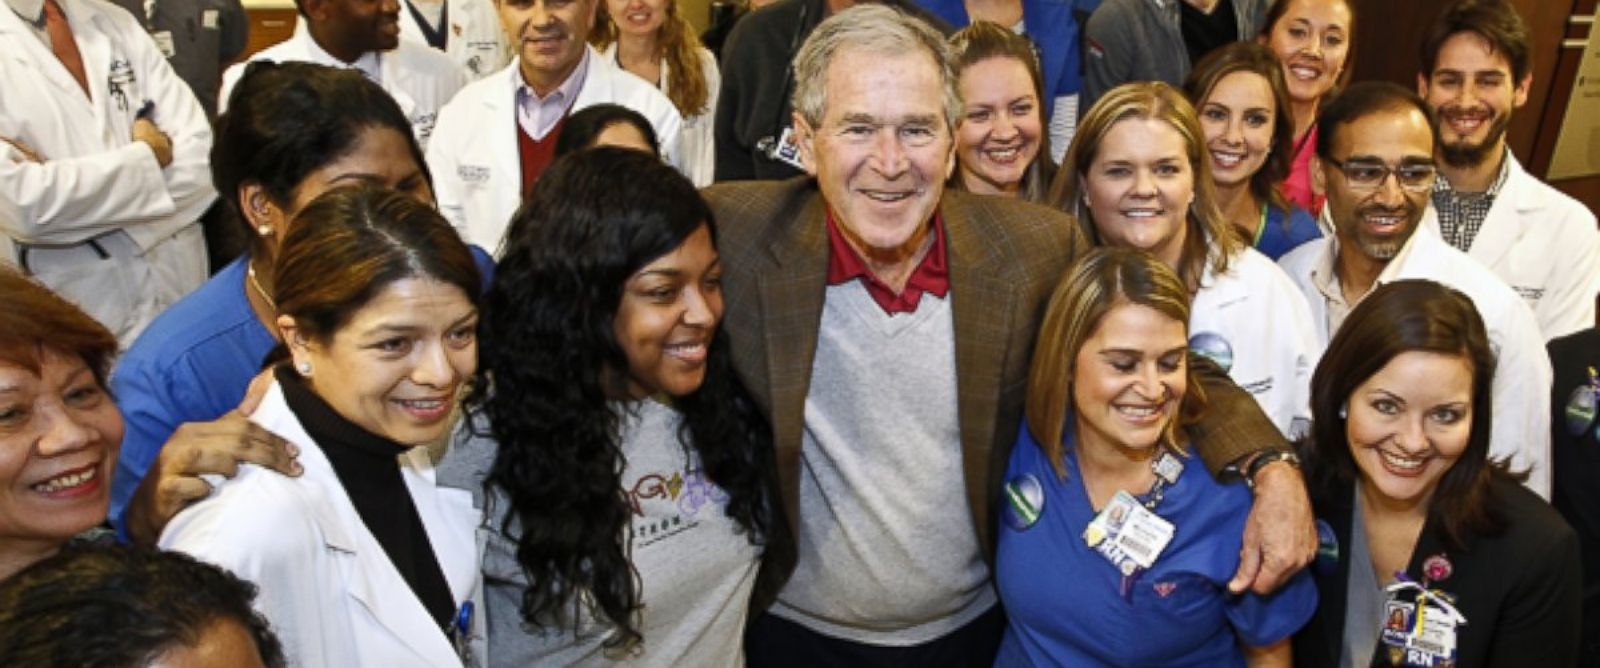 PHOTO: Former President George W. Bush walks into Texas Health Presbyterian Hospital Dallas on Nov. 7, 2014, where he visited with caregivers.